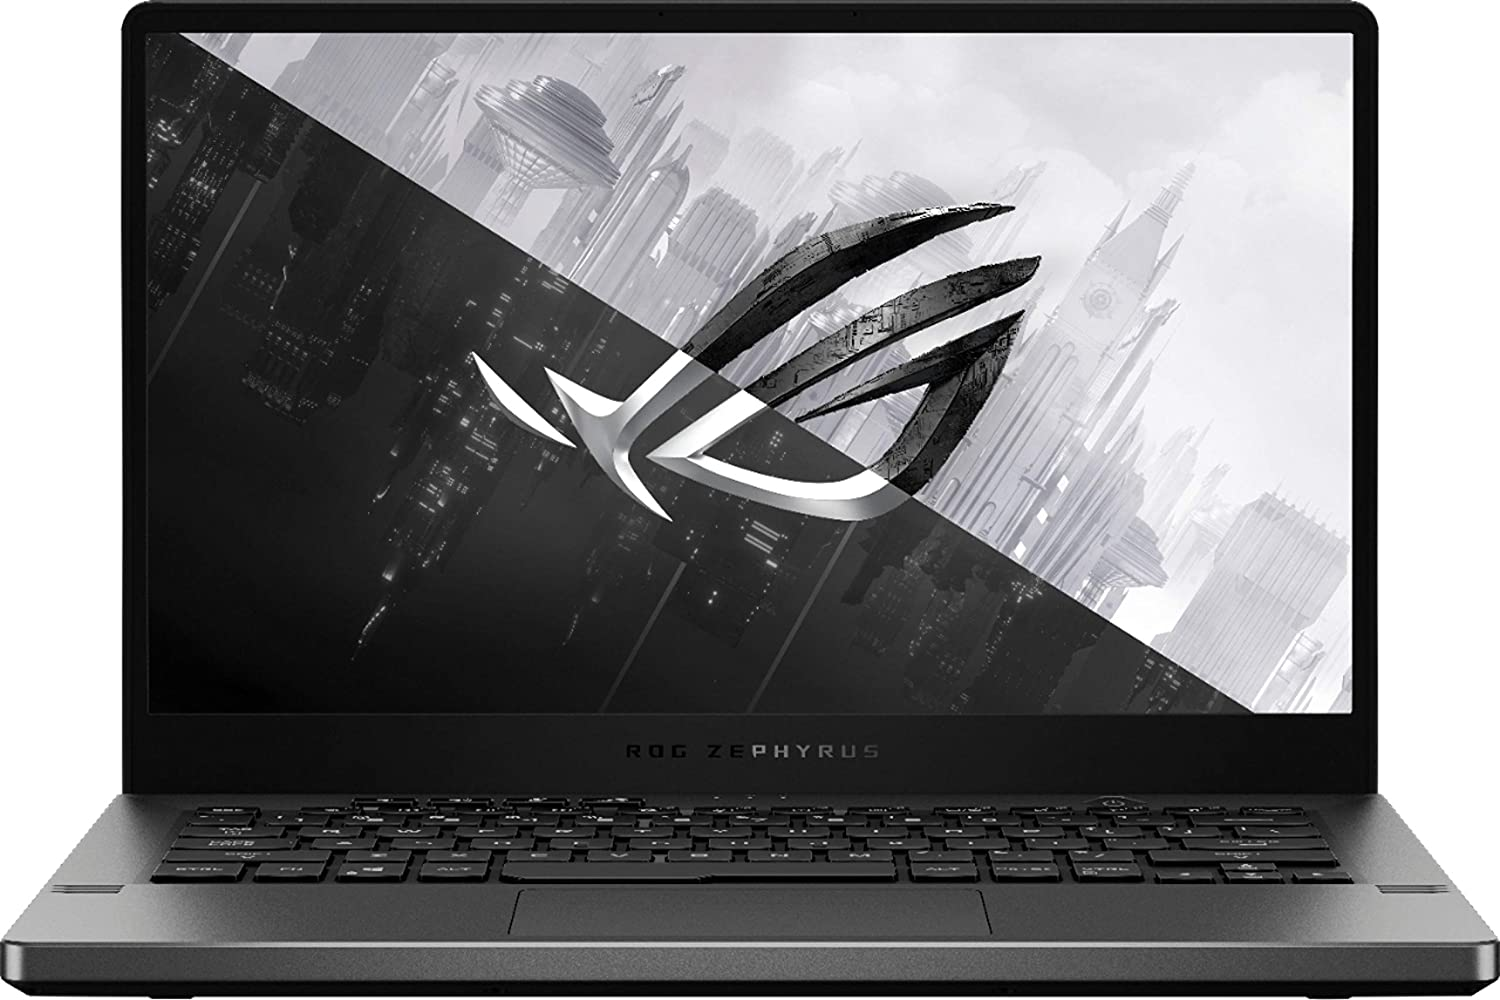 "2020 ASUS ROG Zephyrus G14 14"" VR Ready FHD Gaming Laptop,8 cores AMD Ryzen 7 4800HS(Upto 4.2 GHzBeat i7-10750H),Backlight,HDMI,USB C,NVIDIA GeForce GTX 1650,Gray,Win 10 (12GB RAM